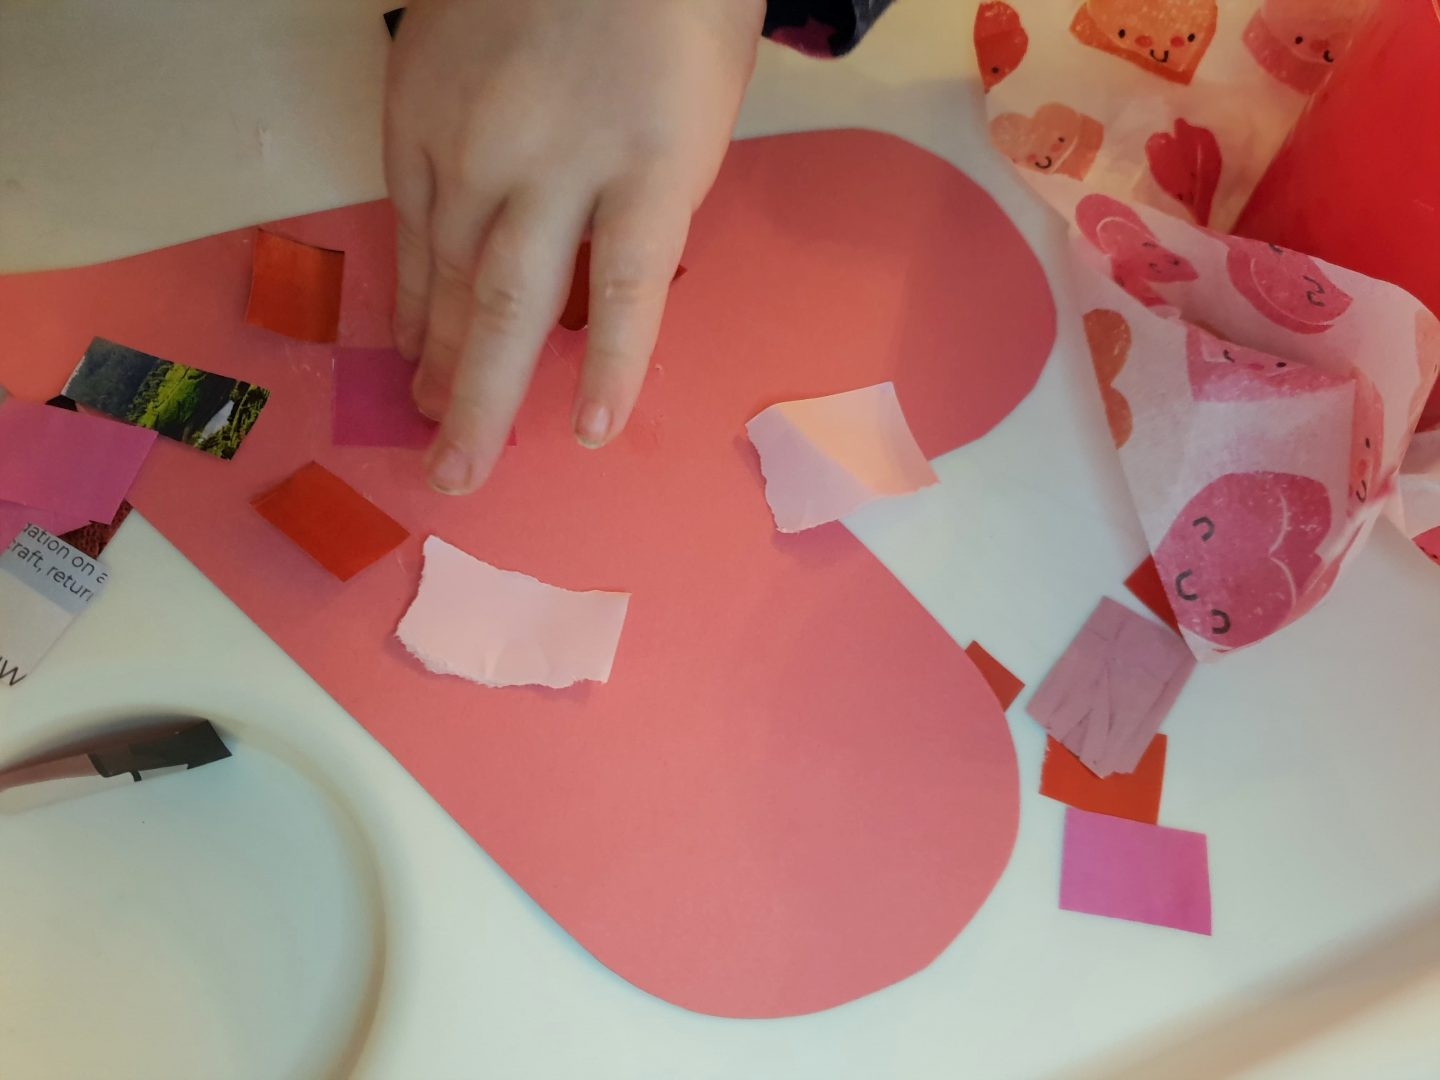 Sticking scrap paper to heart, Valentine's Day craft